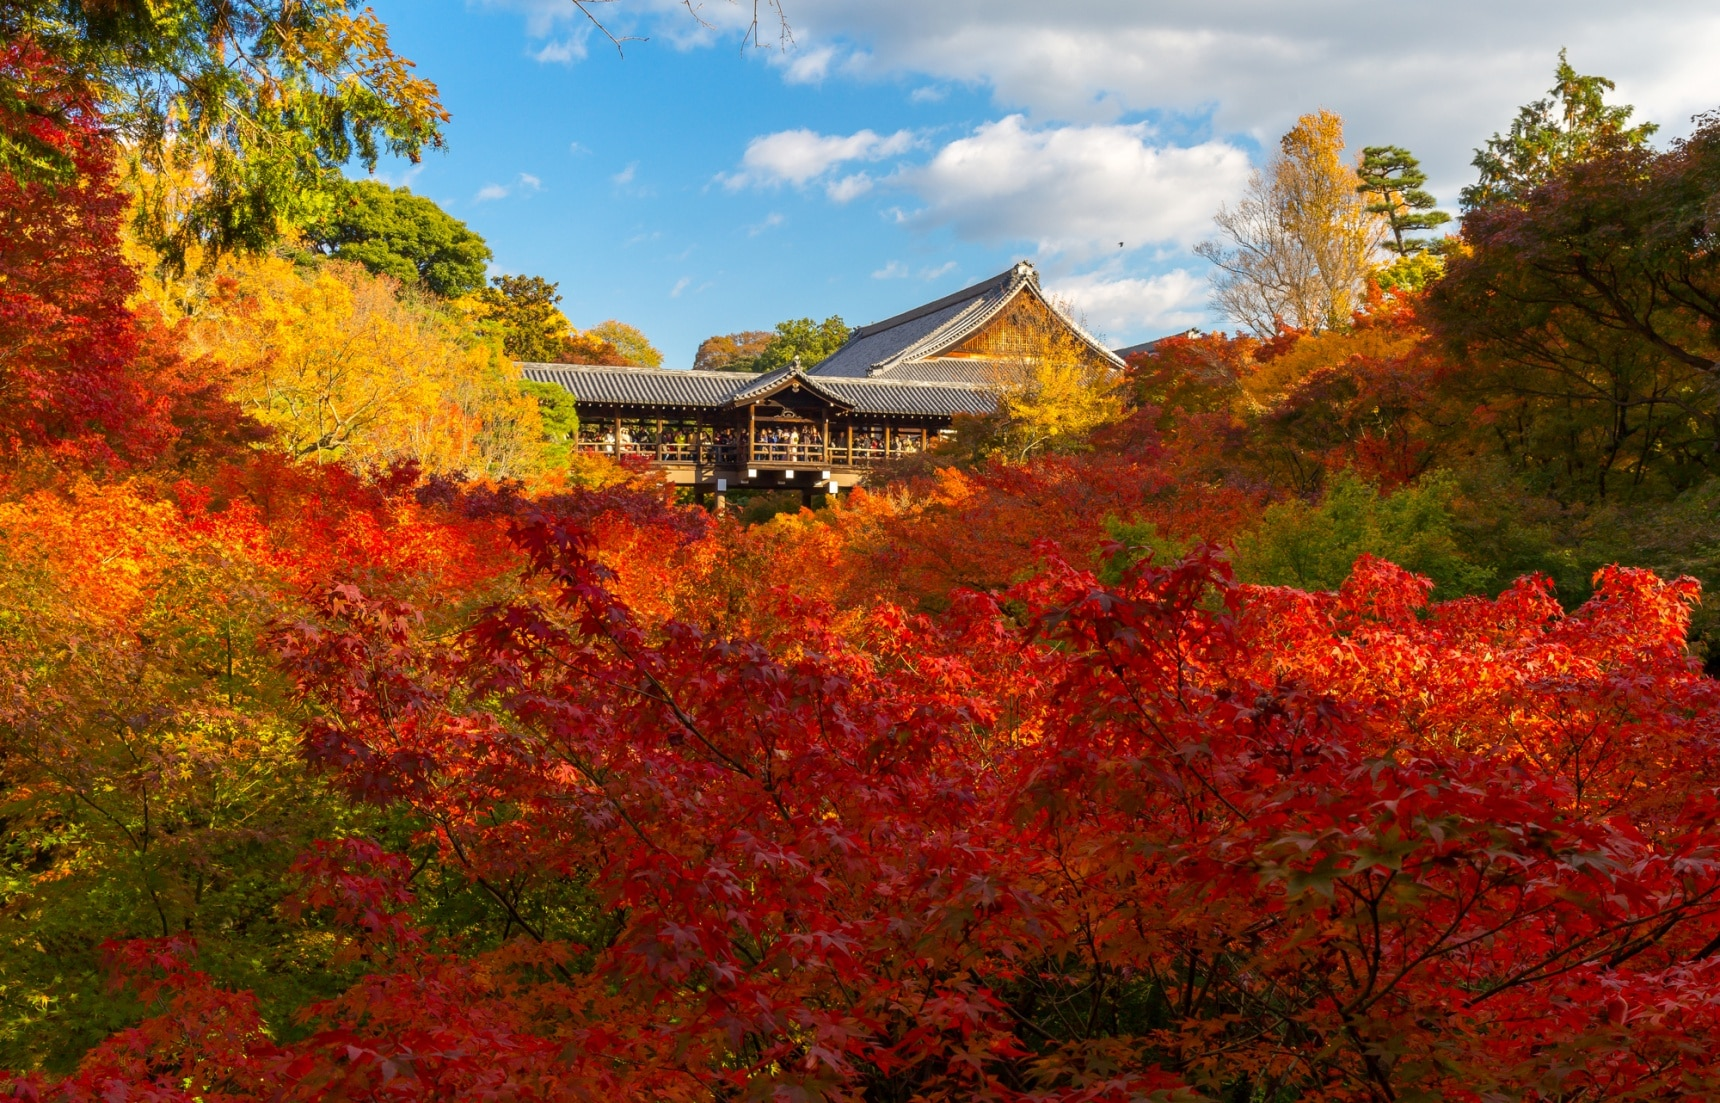 10 Awesome Spots to View Autumn Foliage